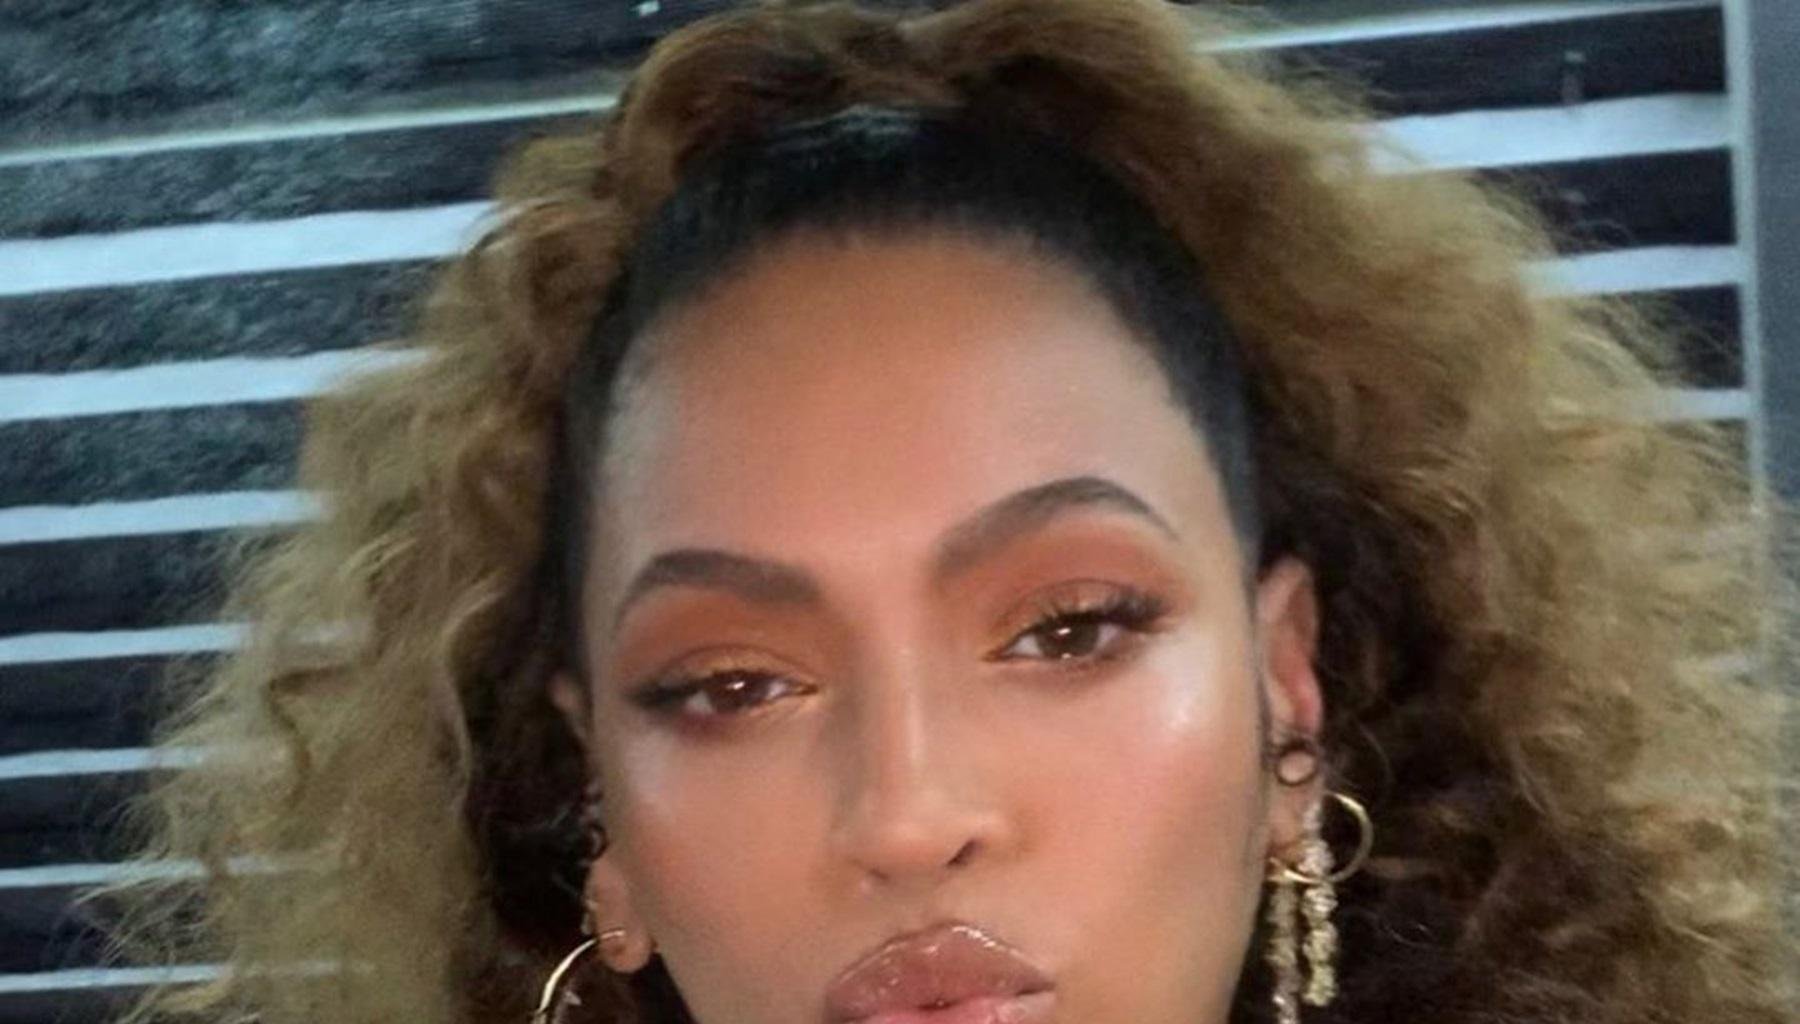 Tina Knowles Lawson Posts Never-Before-Seen Photo Of Beyonce On Her Birthday And Makes Fans Cry By Sharing Story About Her Mother, Agnéz Deréon